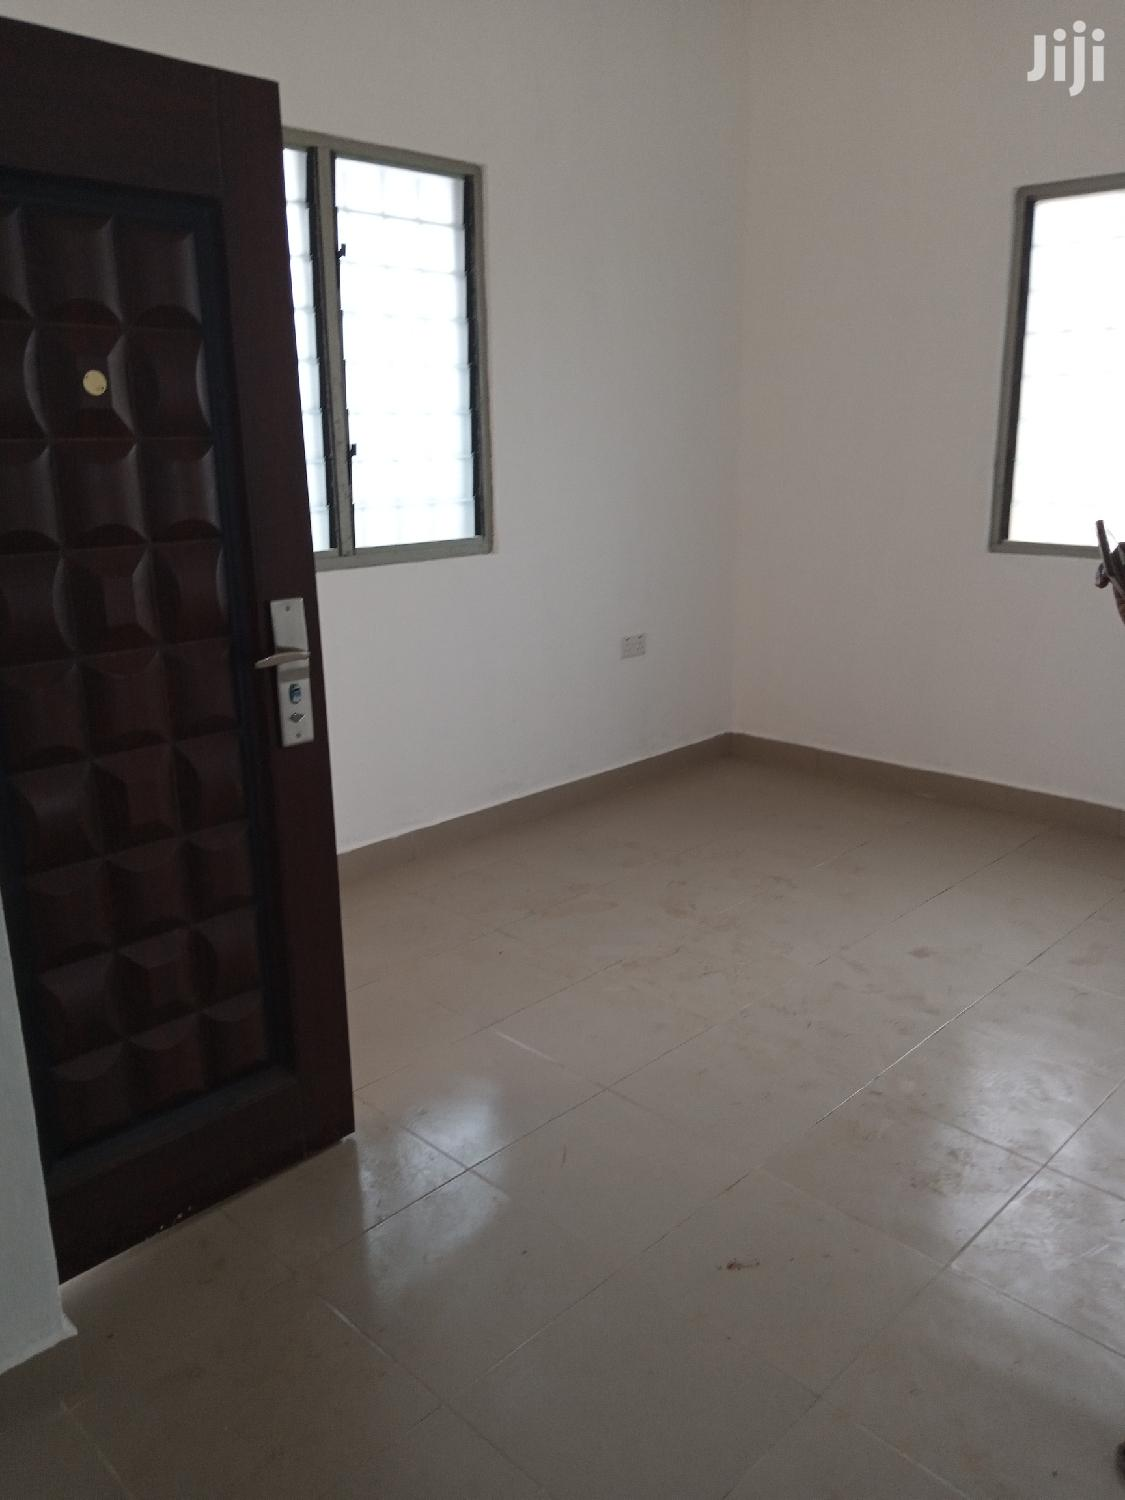 Chamber and Hall Self Contain for Rent in Ashongman | Houses & Apartments For Rent for sale in Accra Metropolitan, Greater Accra, Ghana